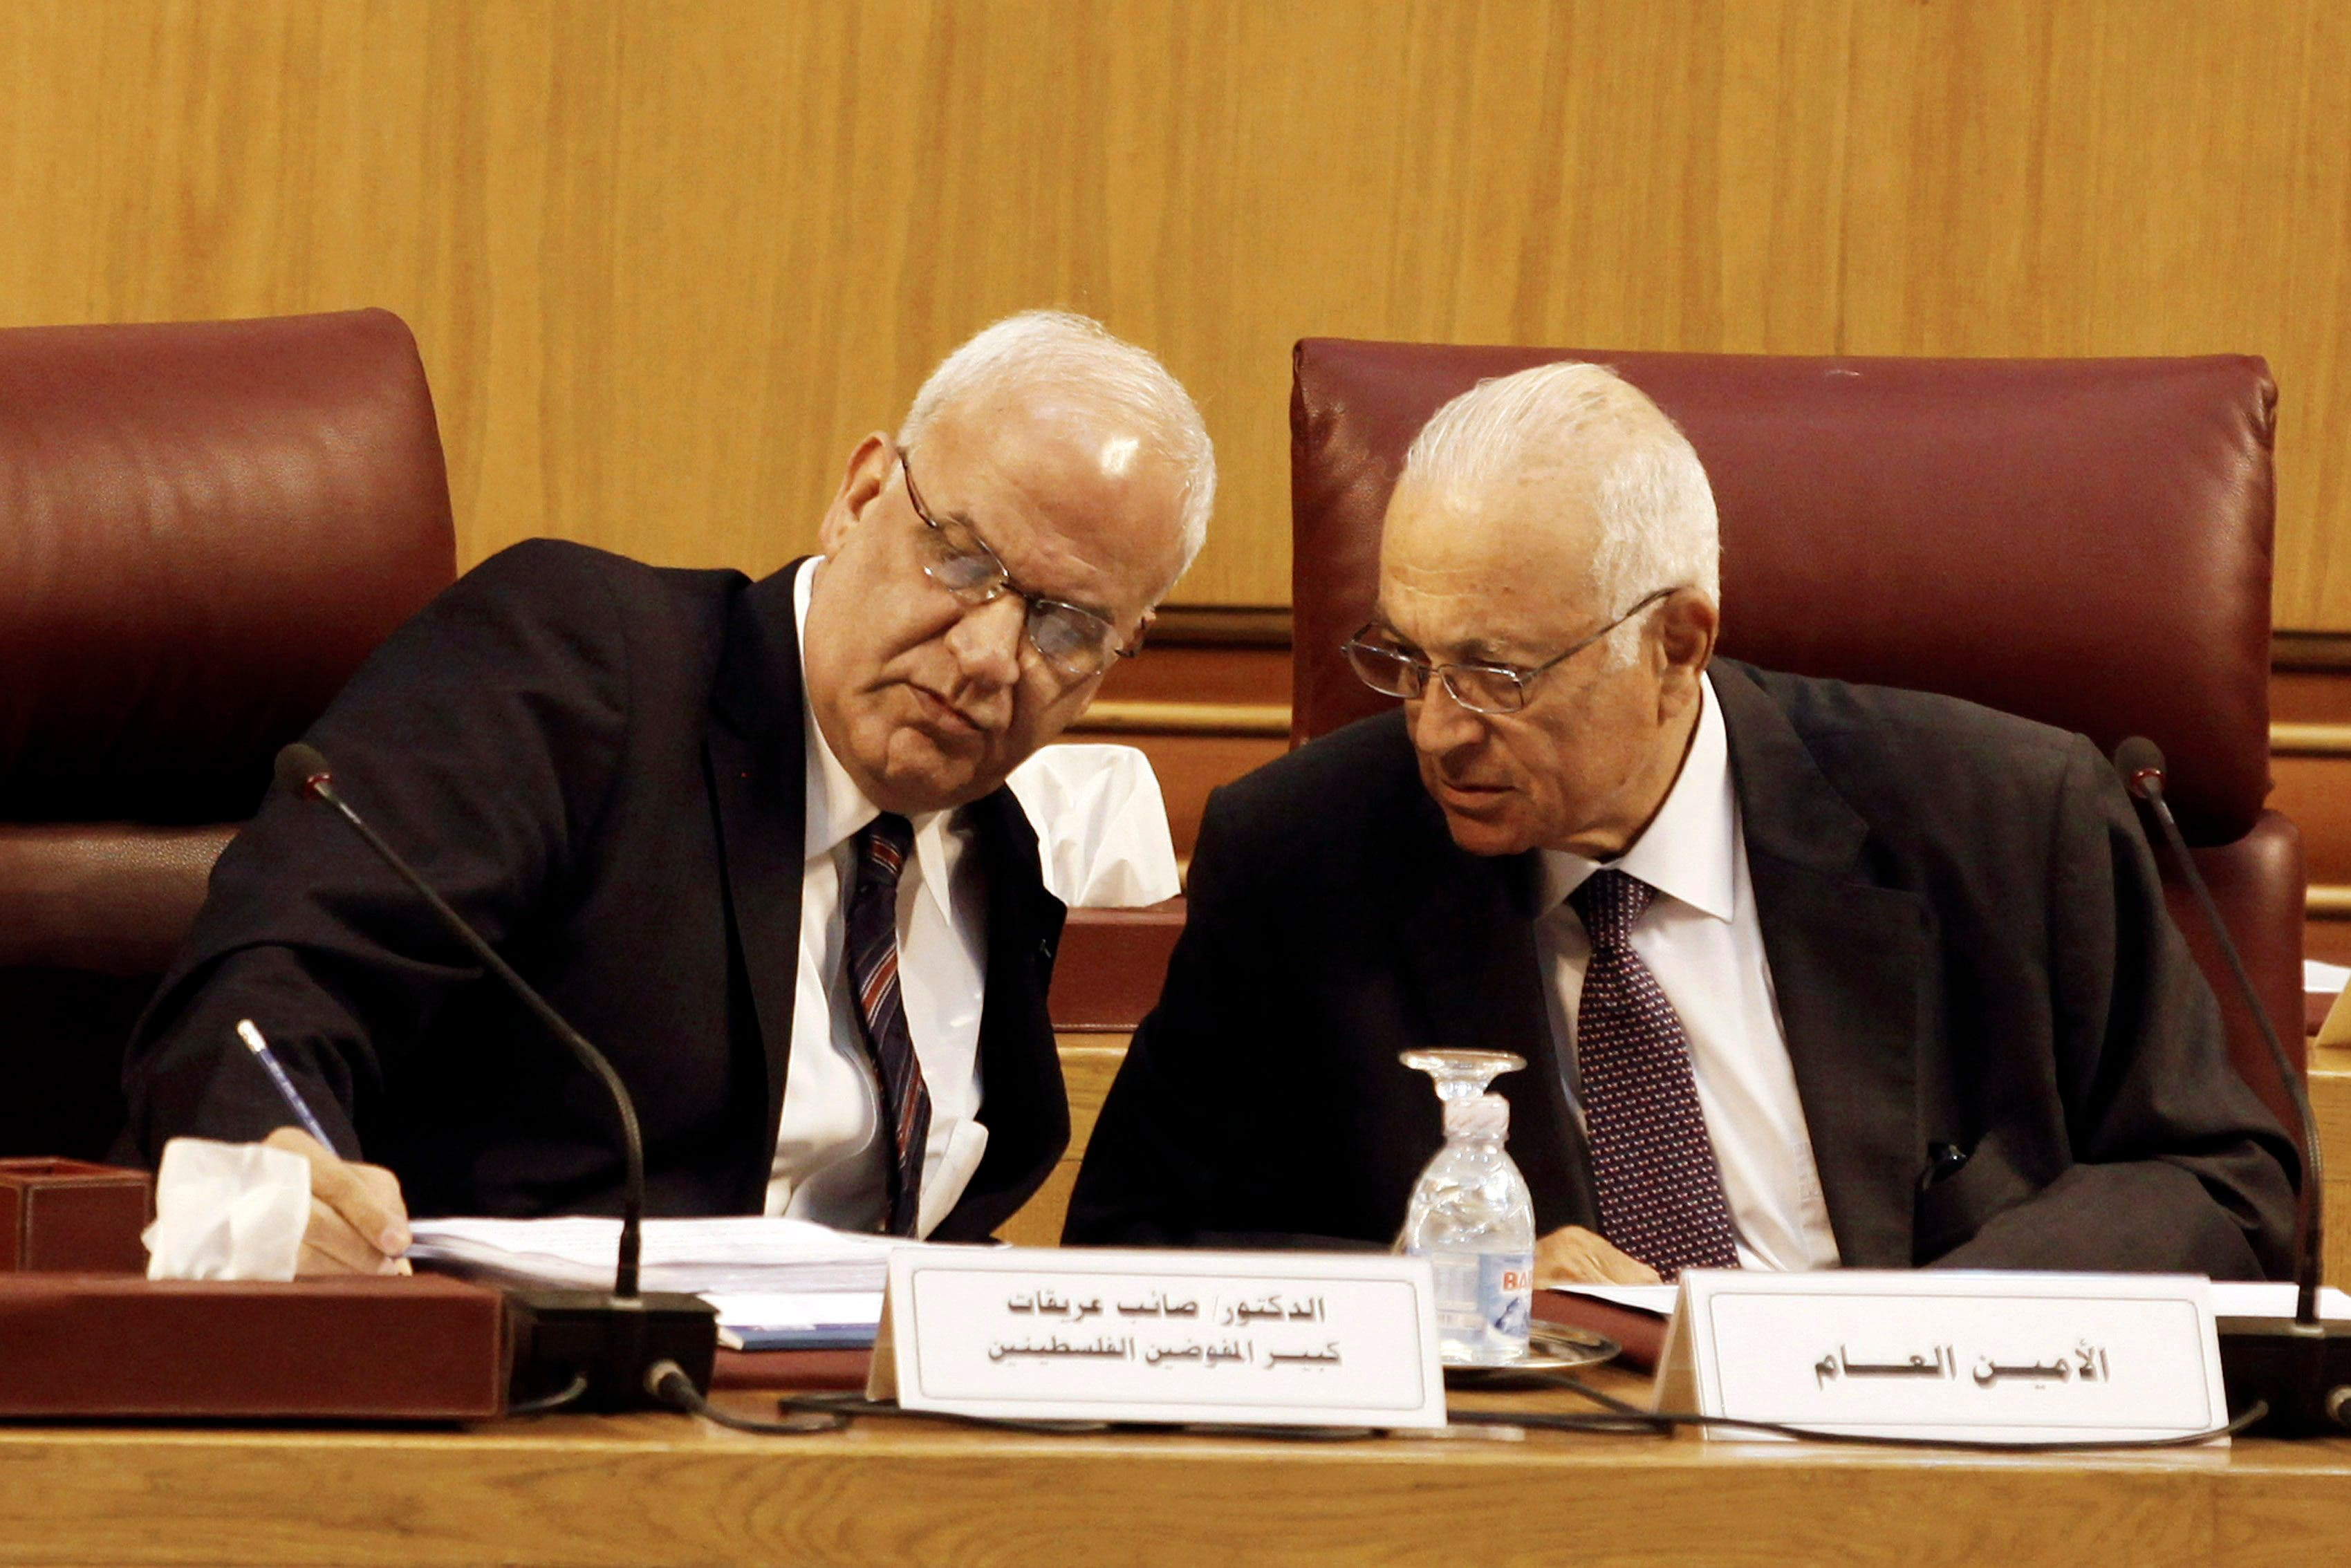 Palestinian chief negotiator Saeb Erekat (L) talks with Arab League Chief Nabil el-Araby during their meeting at the Arab League in Cairo August 11, 2014. (Reuters)